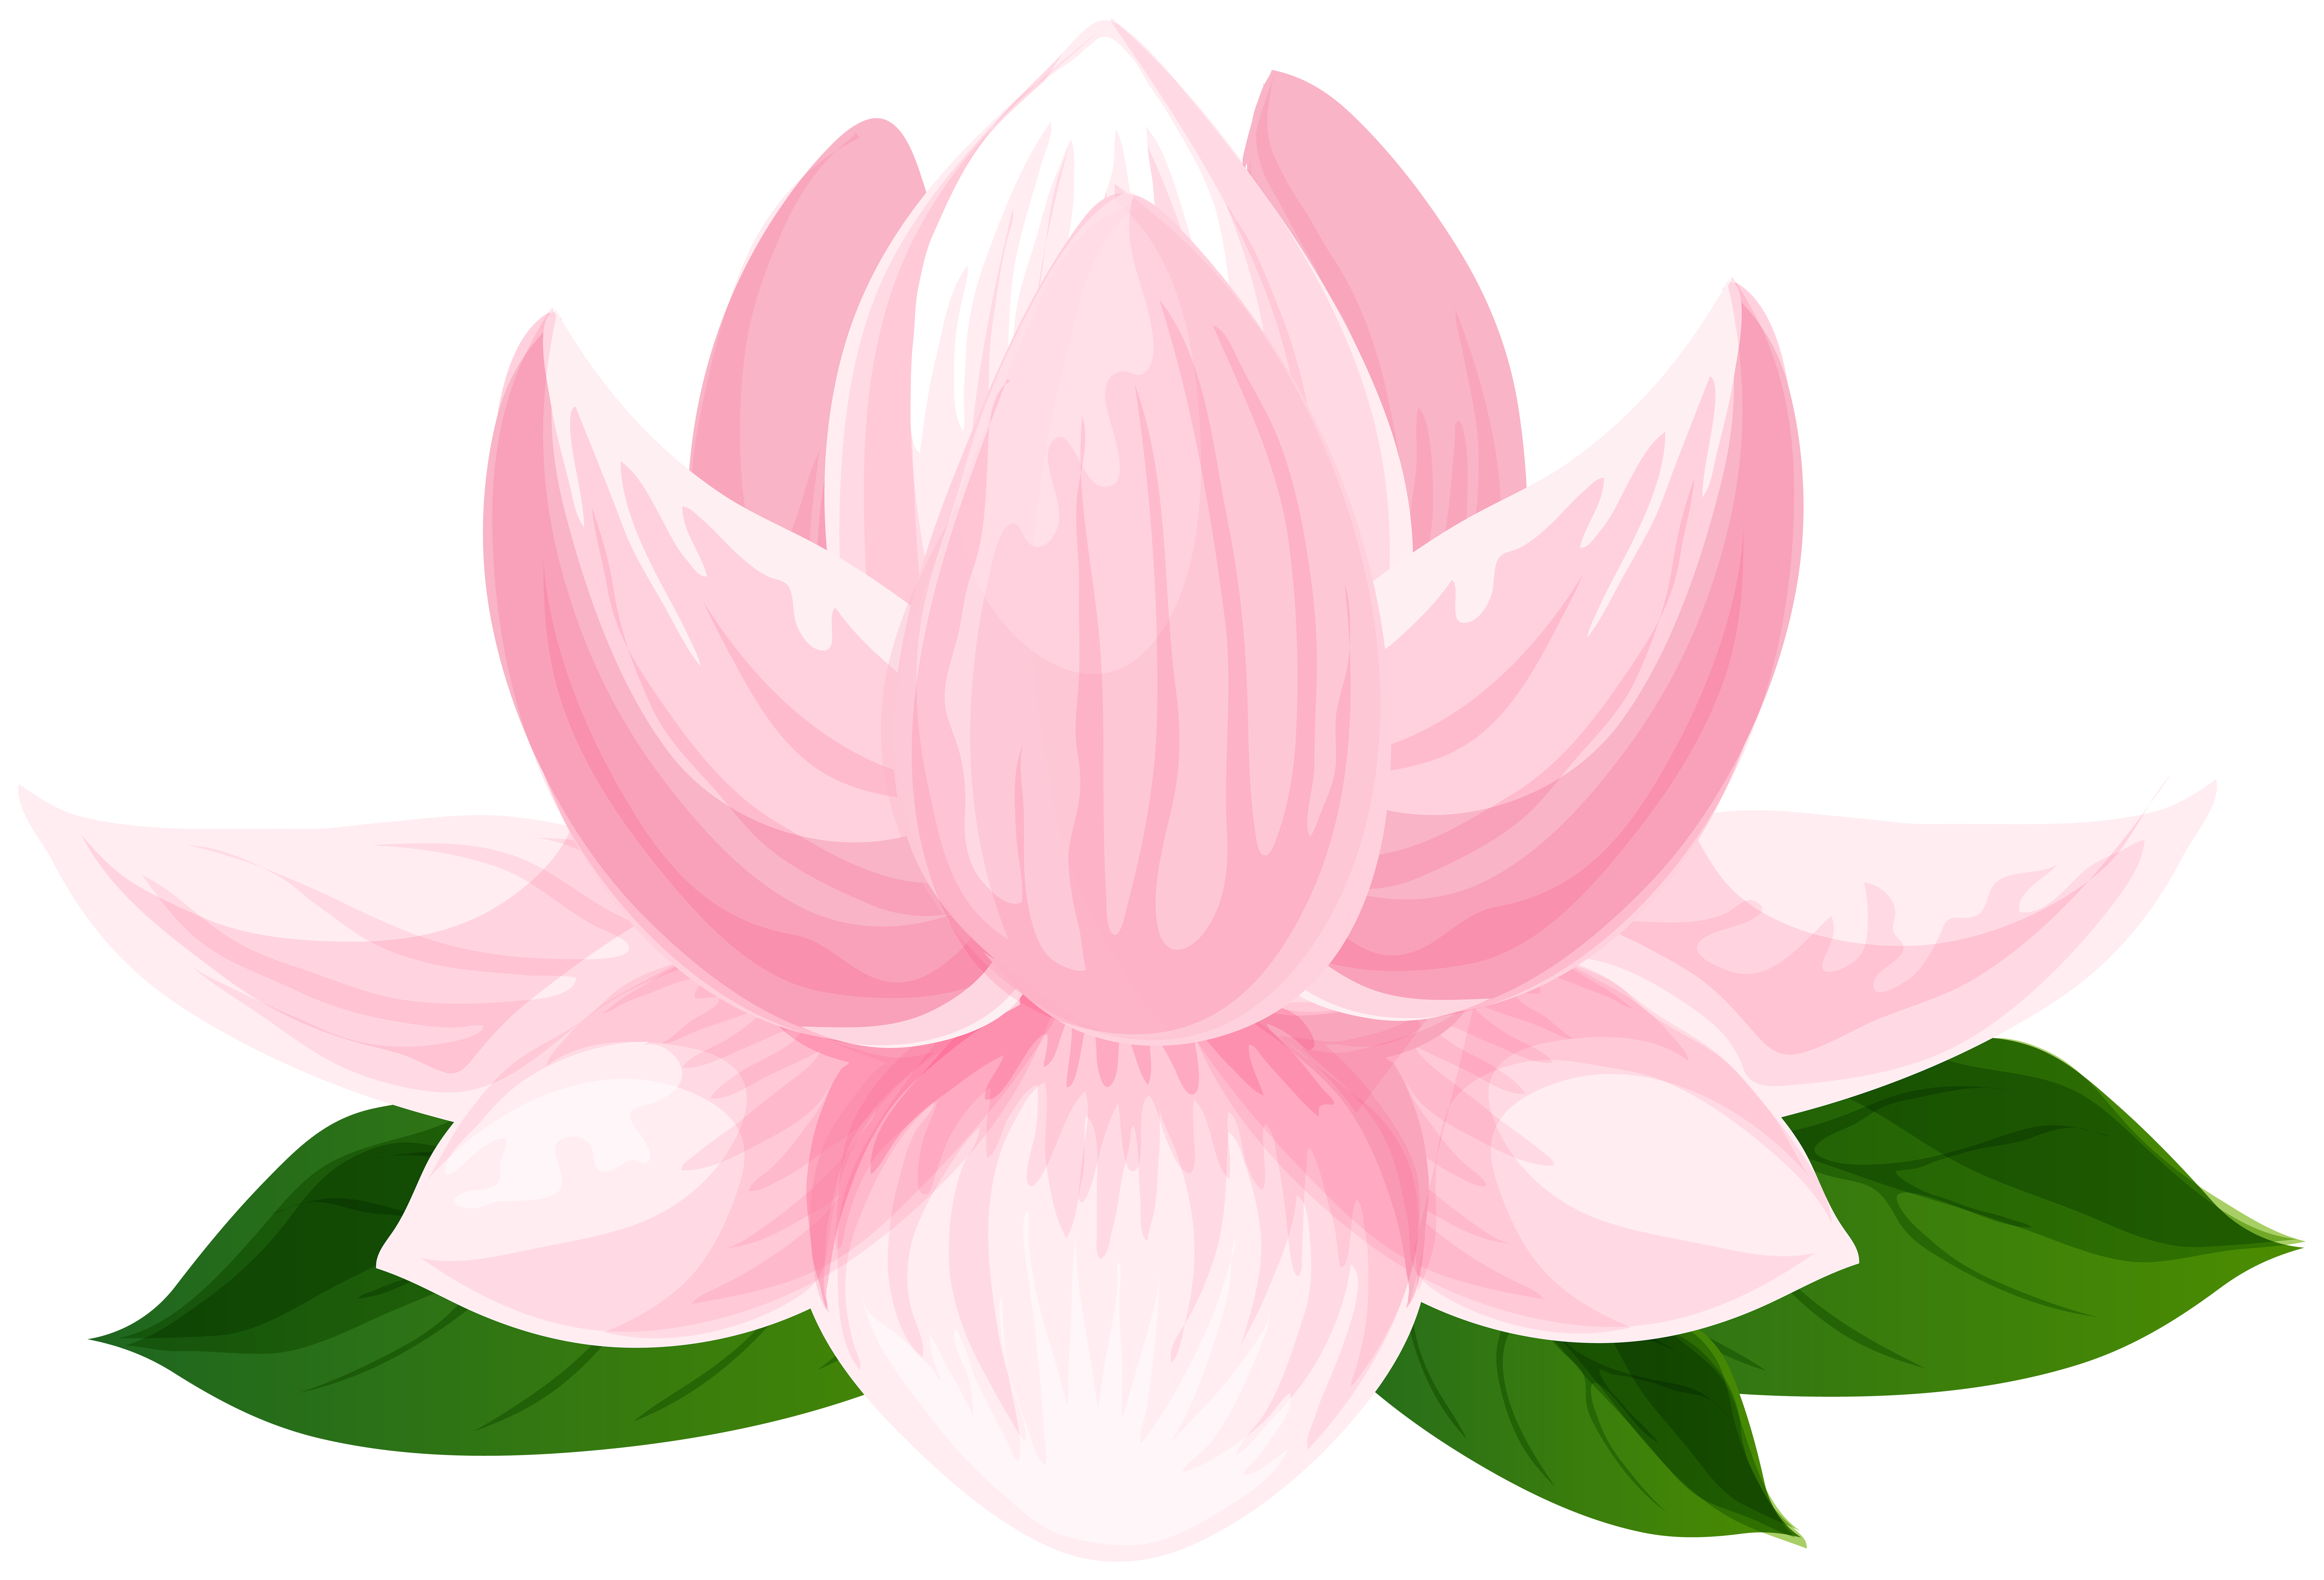 Lotus Flower Transparent Image.